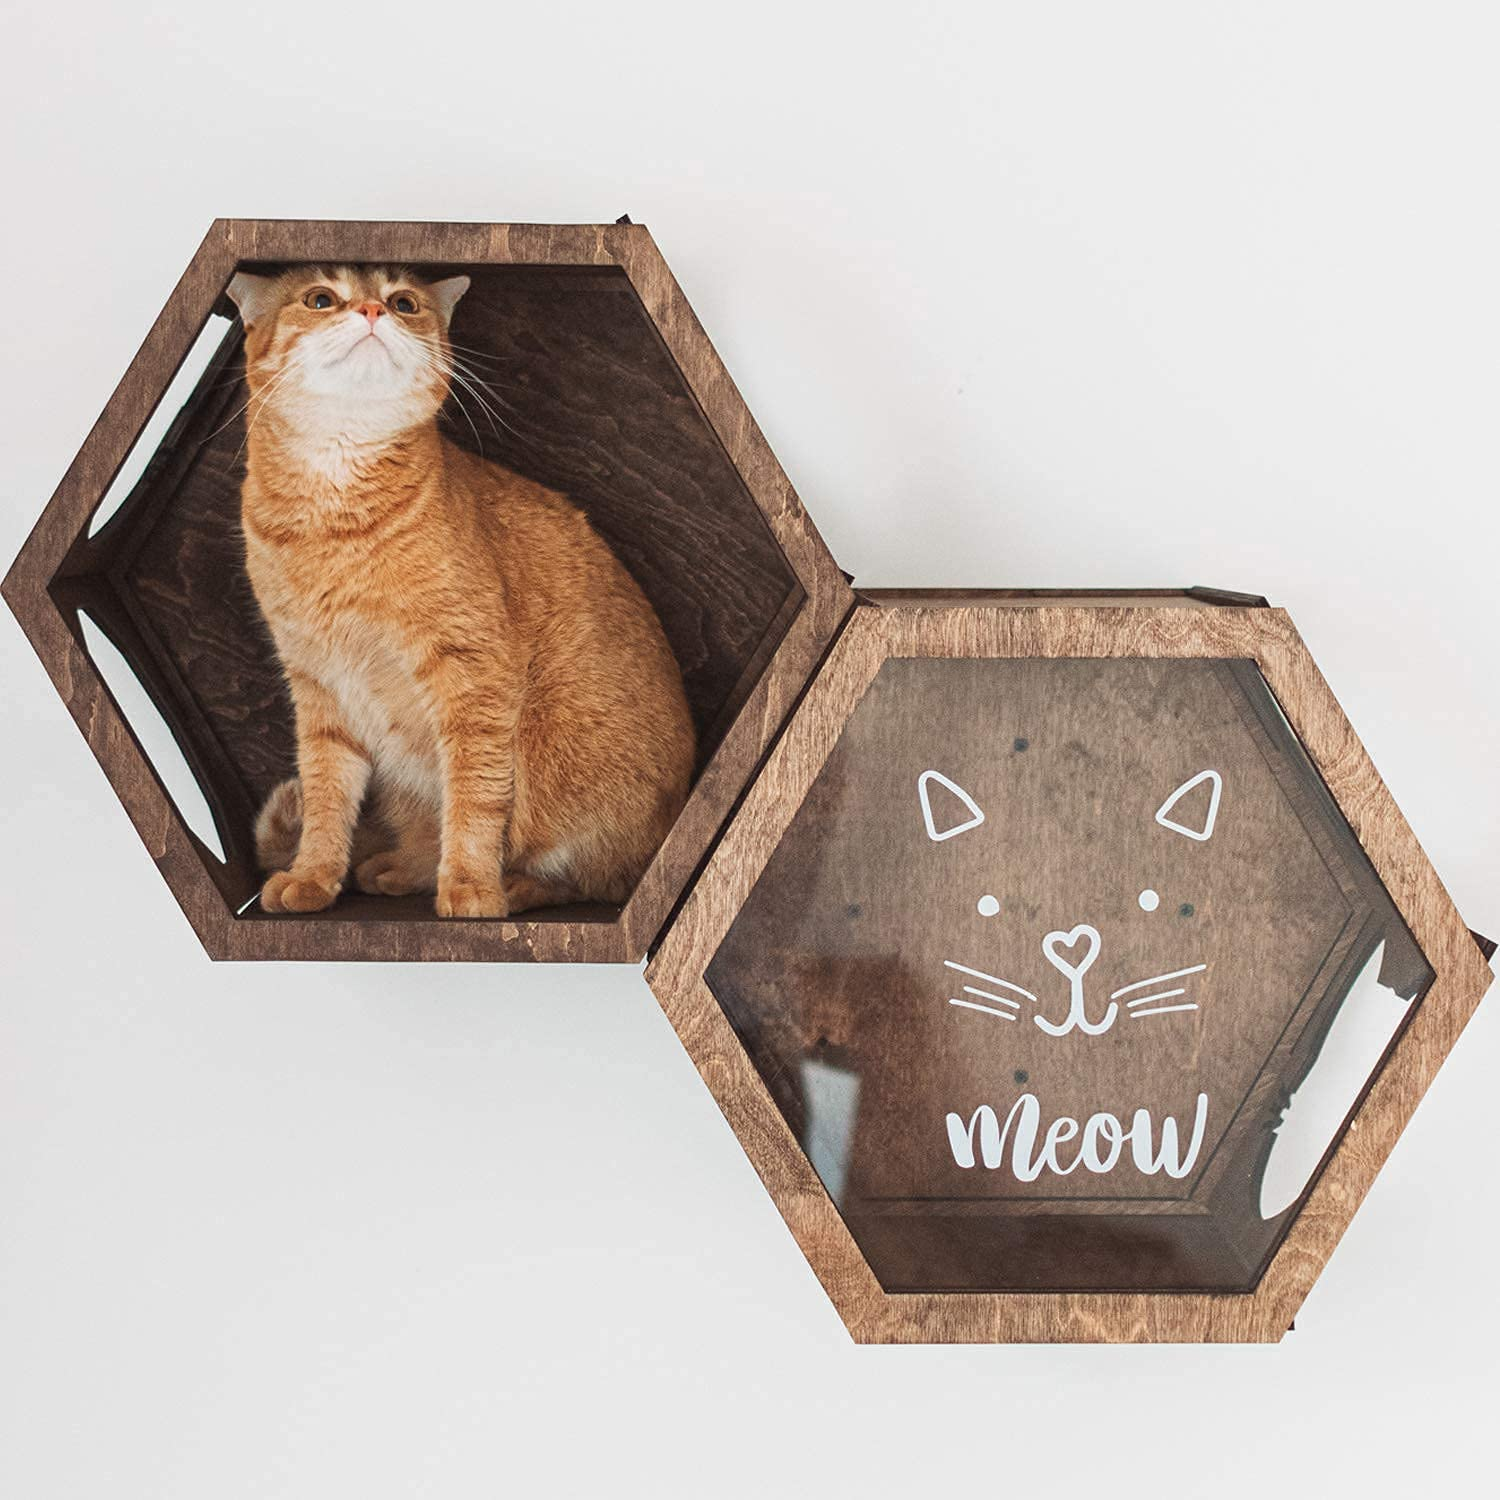 Cat Shelf Bed Pine Wood Cat Wall Furniture Wall Mounted Cat Shelf 18 Cat Perch Cat Lounger Pet Kitty Bed catwallfurniture made to order